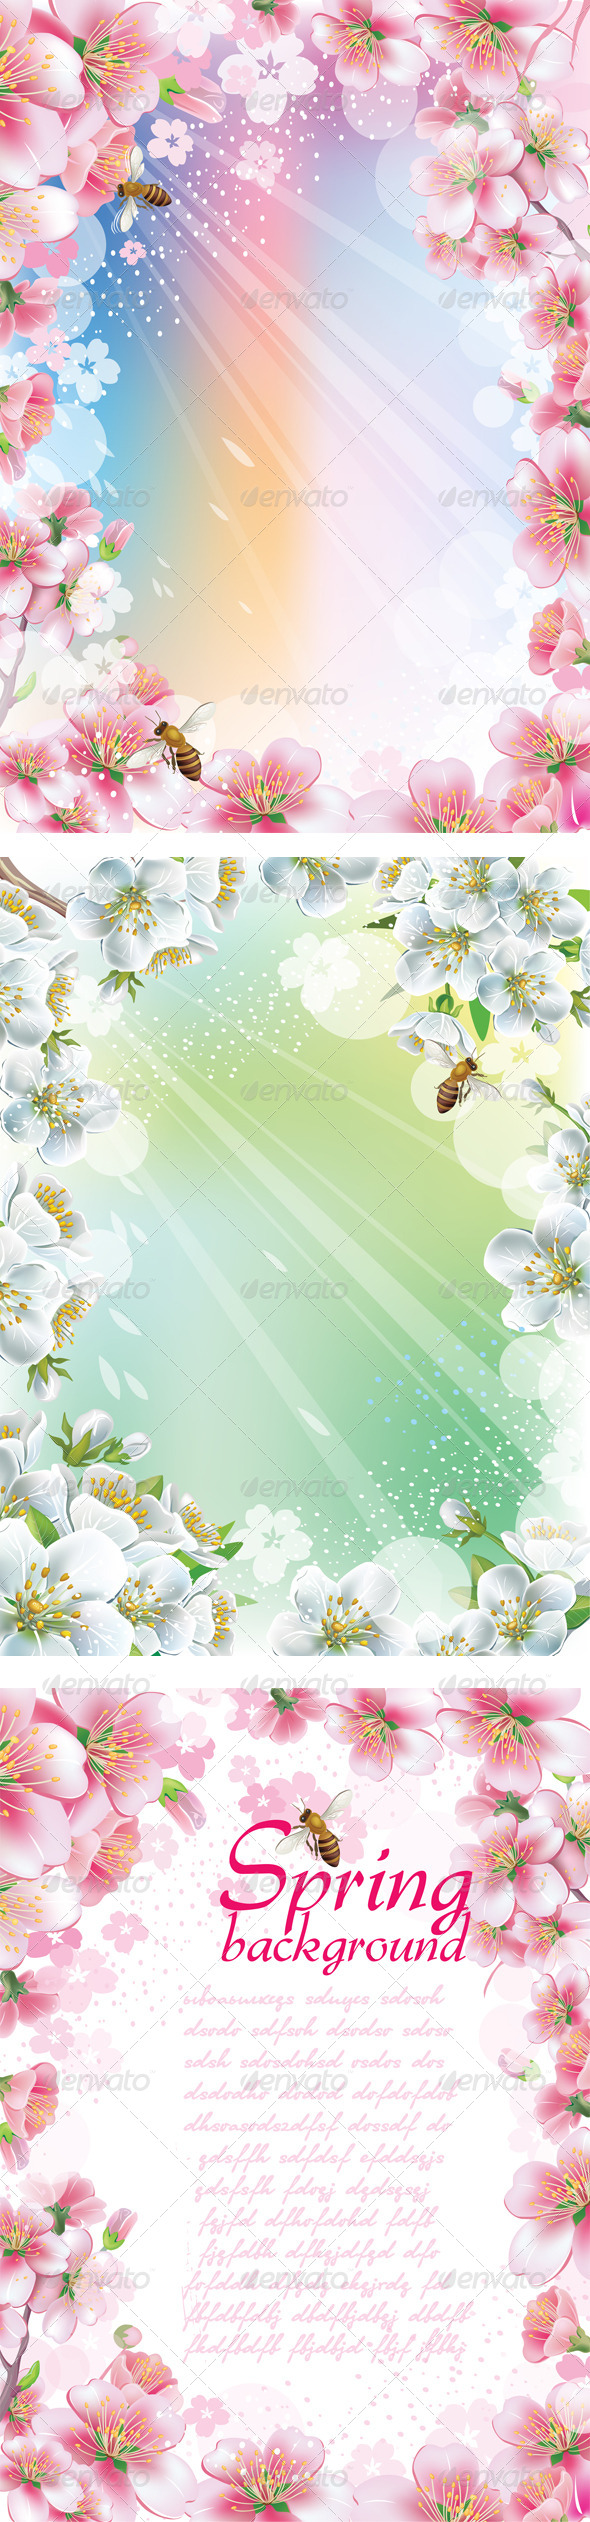 GraphicRiver Set of Spring Backgrounds with Cherry Blossom 6852309